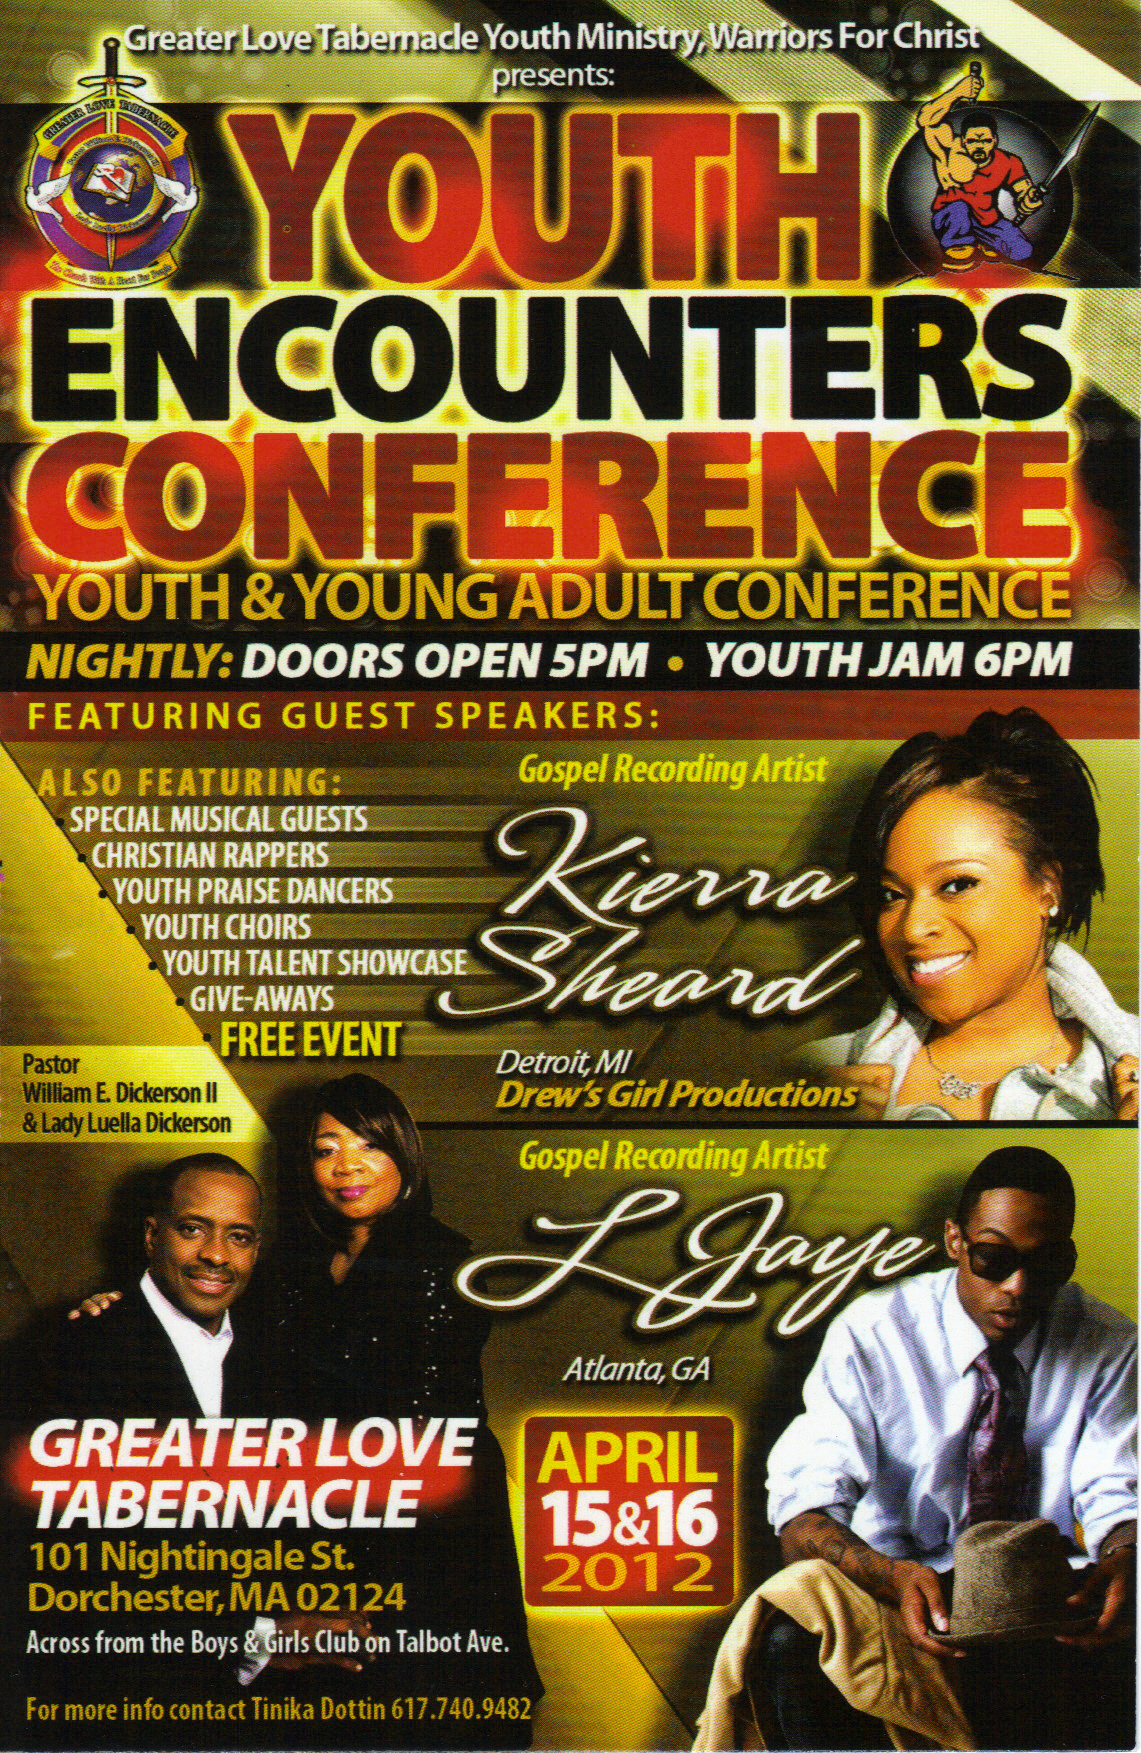 greater love tabernacle youth ministry present u2019s  u201cyouth